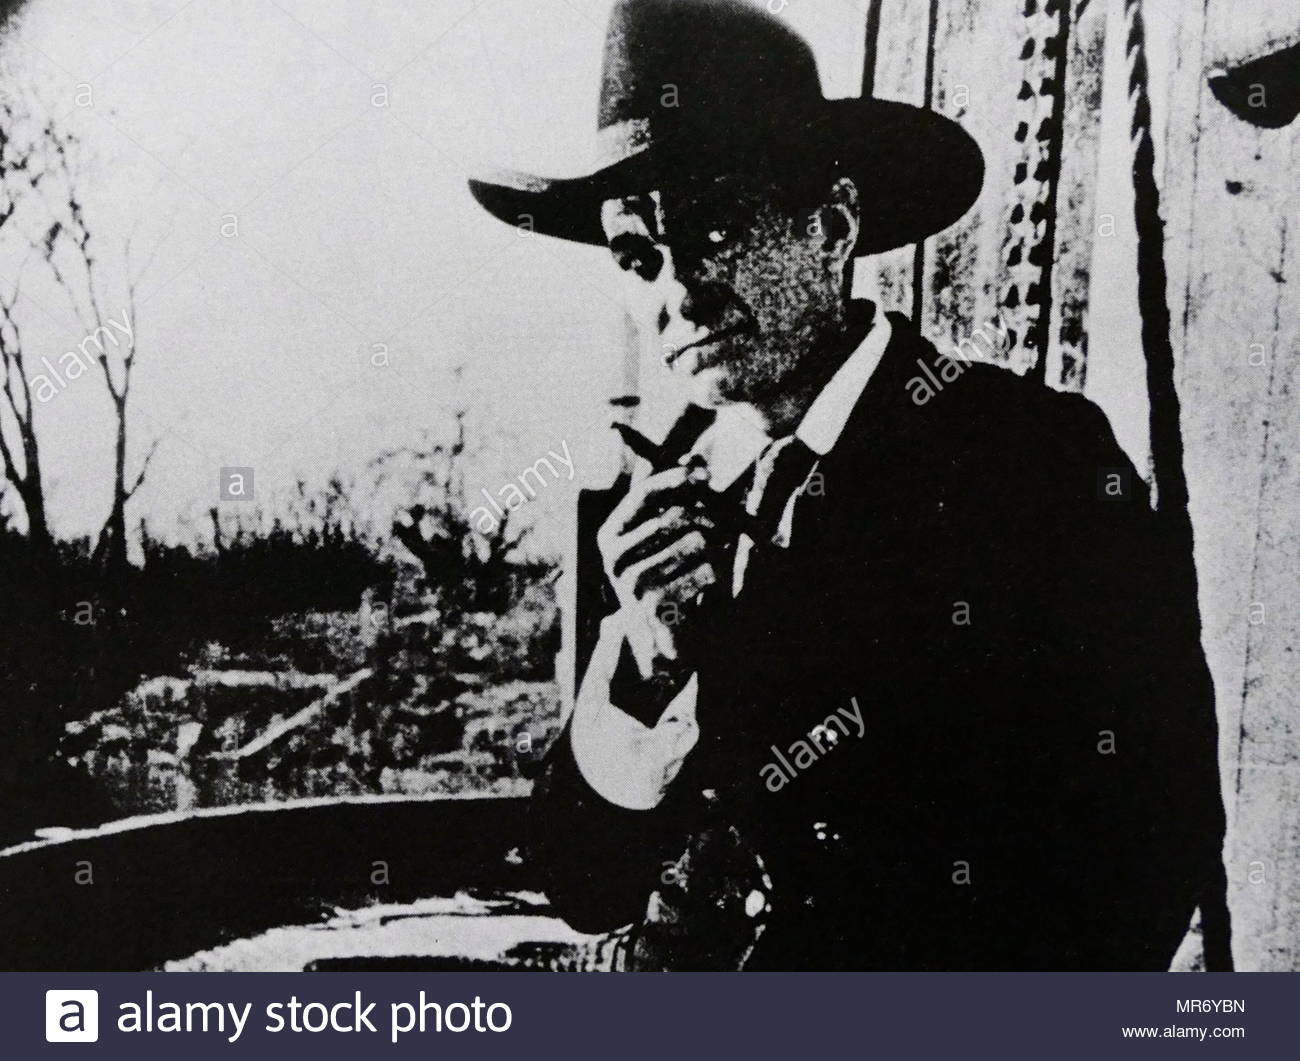 Harry Carey in 'The Outcasts of Poker Flat' a 1919 American western film, directed by John Ford. The film is considered to be lost. The screenplay is based upon the 1869 story of the same name by Bret Harte. Harry Carey (1878 – 1947) was an American actor and one of silent film's earliest superstars. - Stock Image